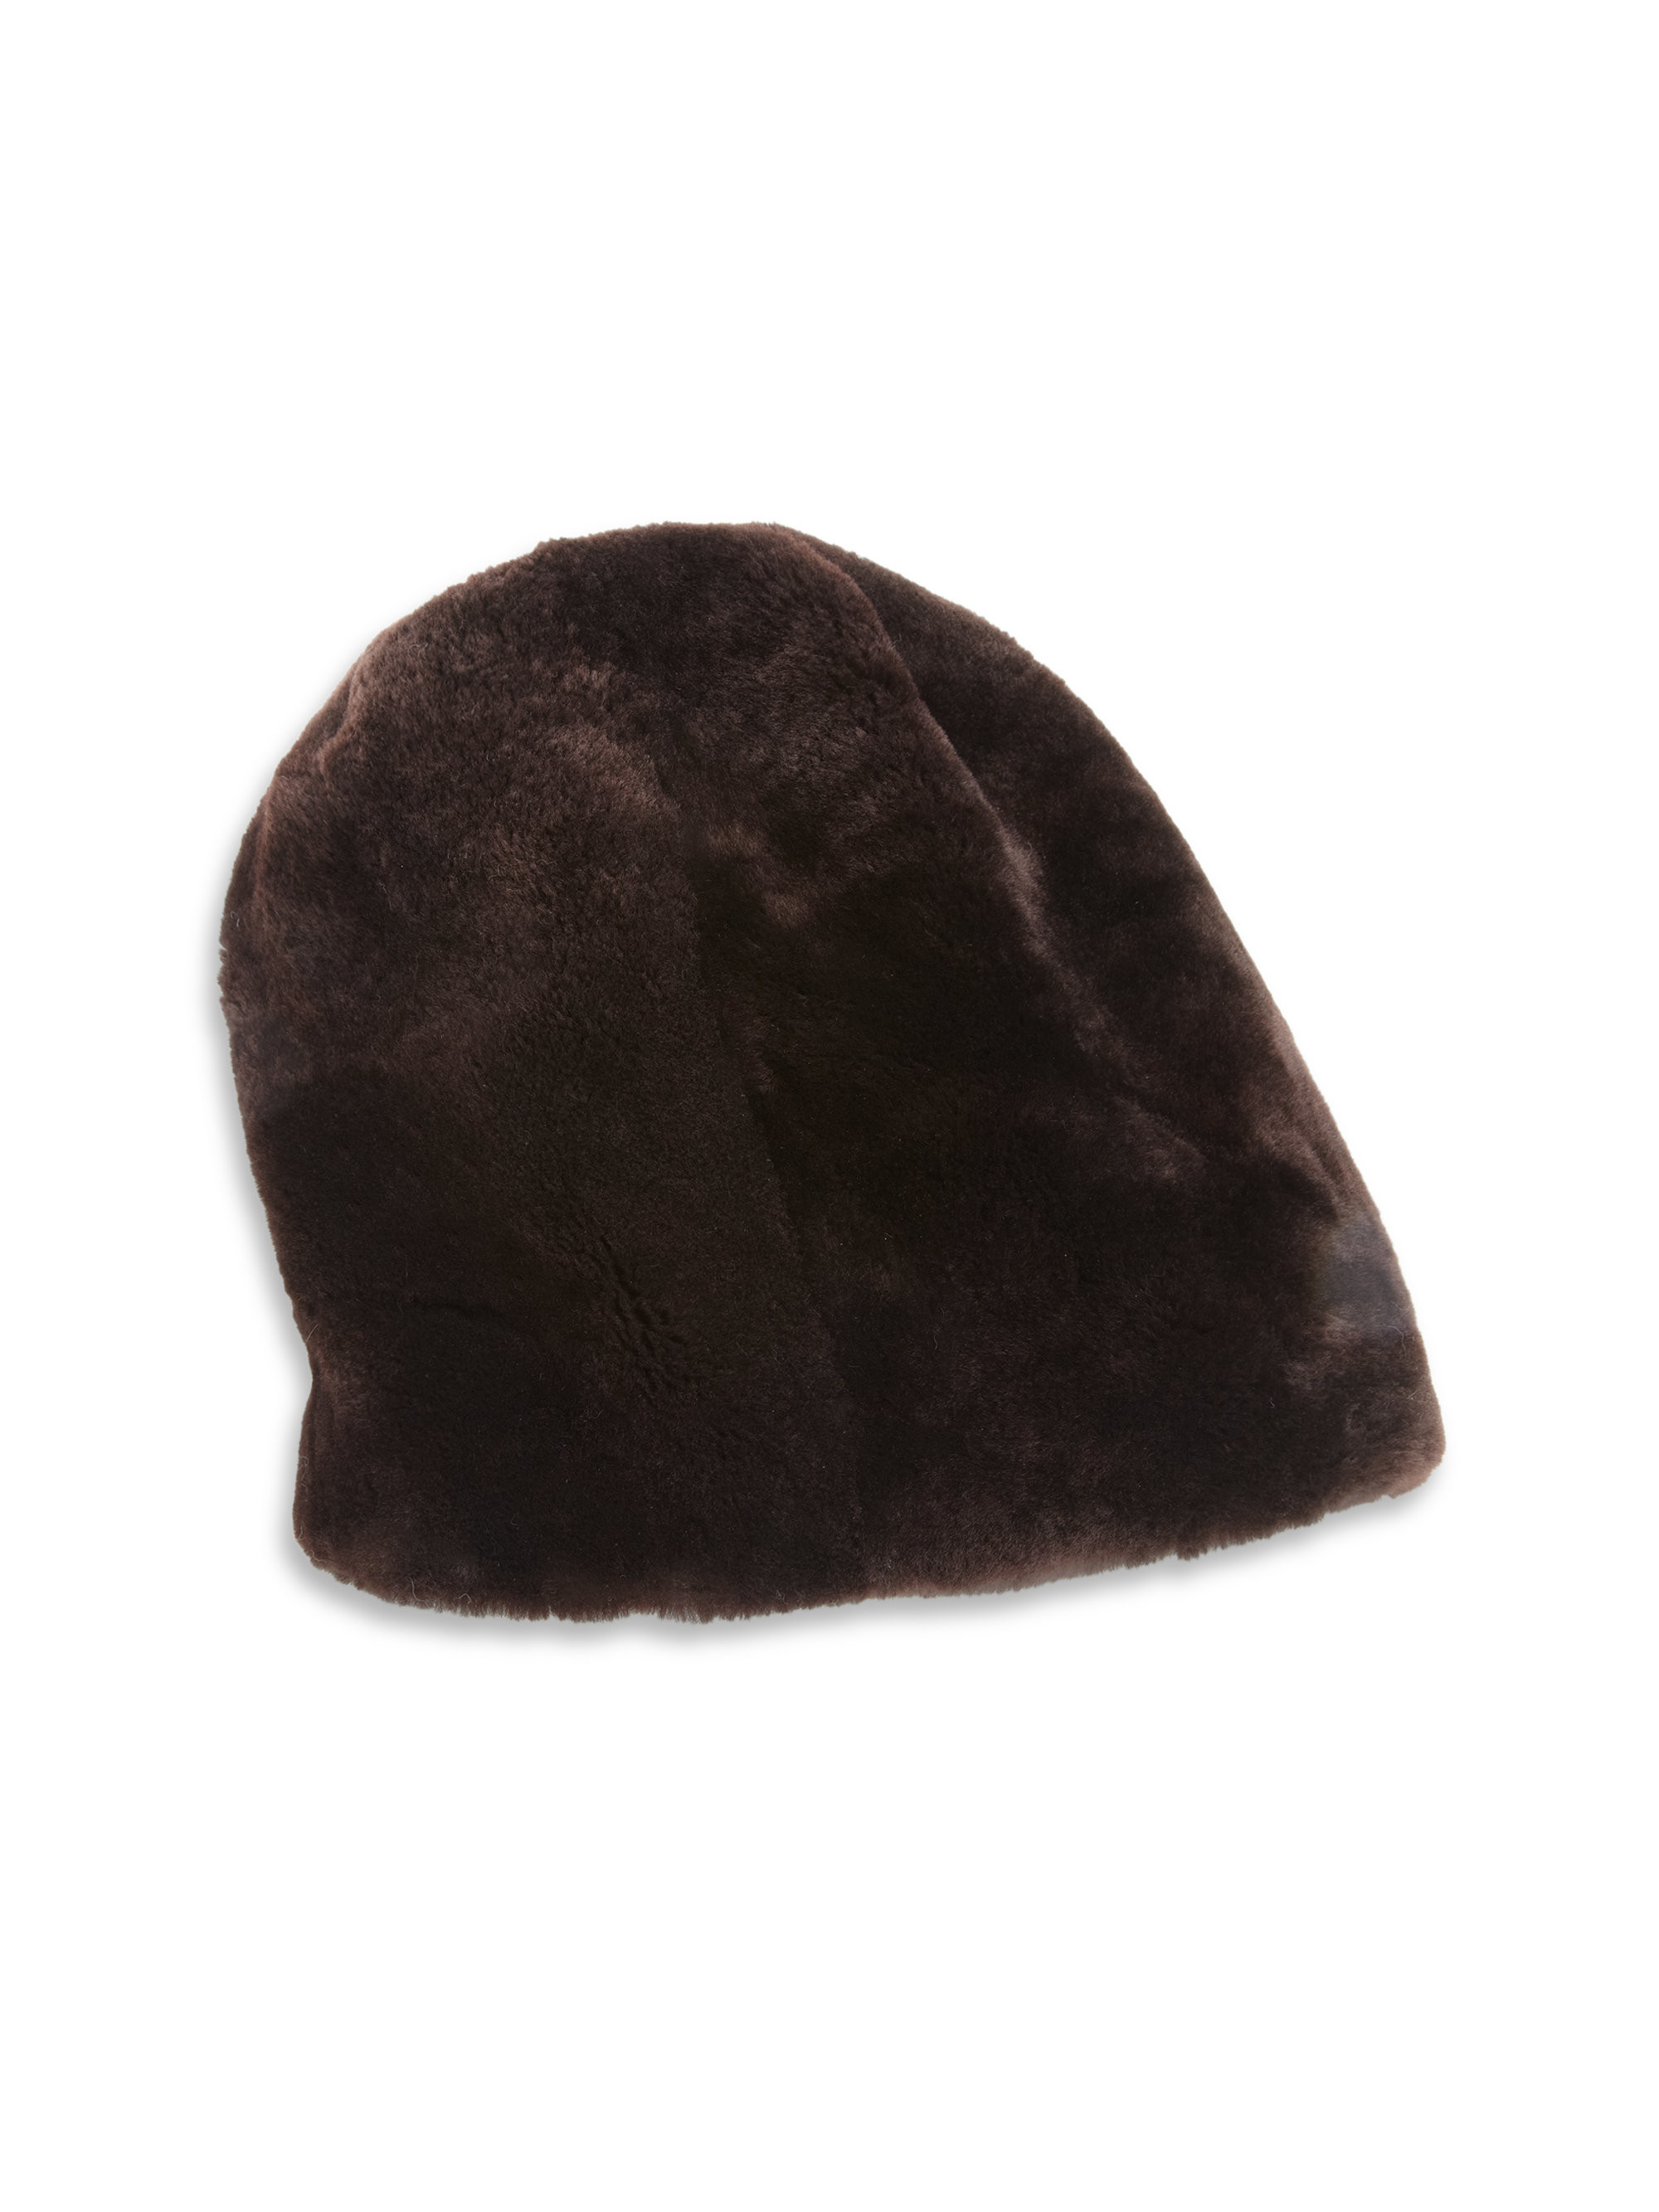 Best Of Saks Fifth Avenue Lamb Fur Hat In Brown Lamb Hat Of Awesome 46 Images Lamb Hat